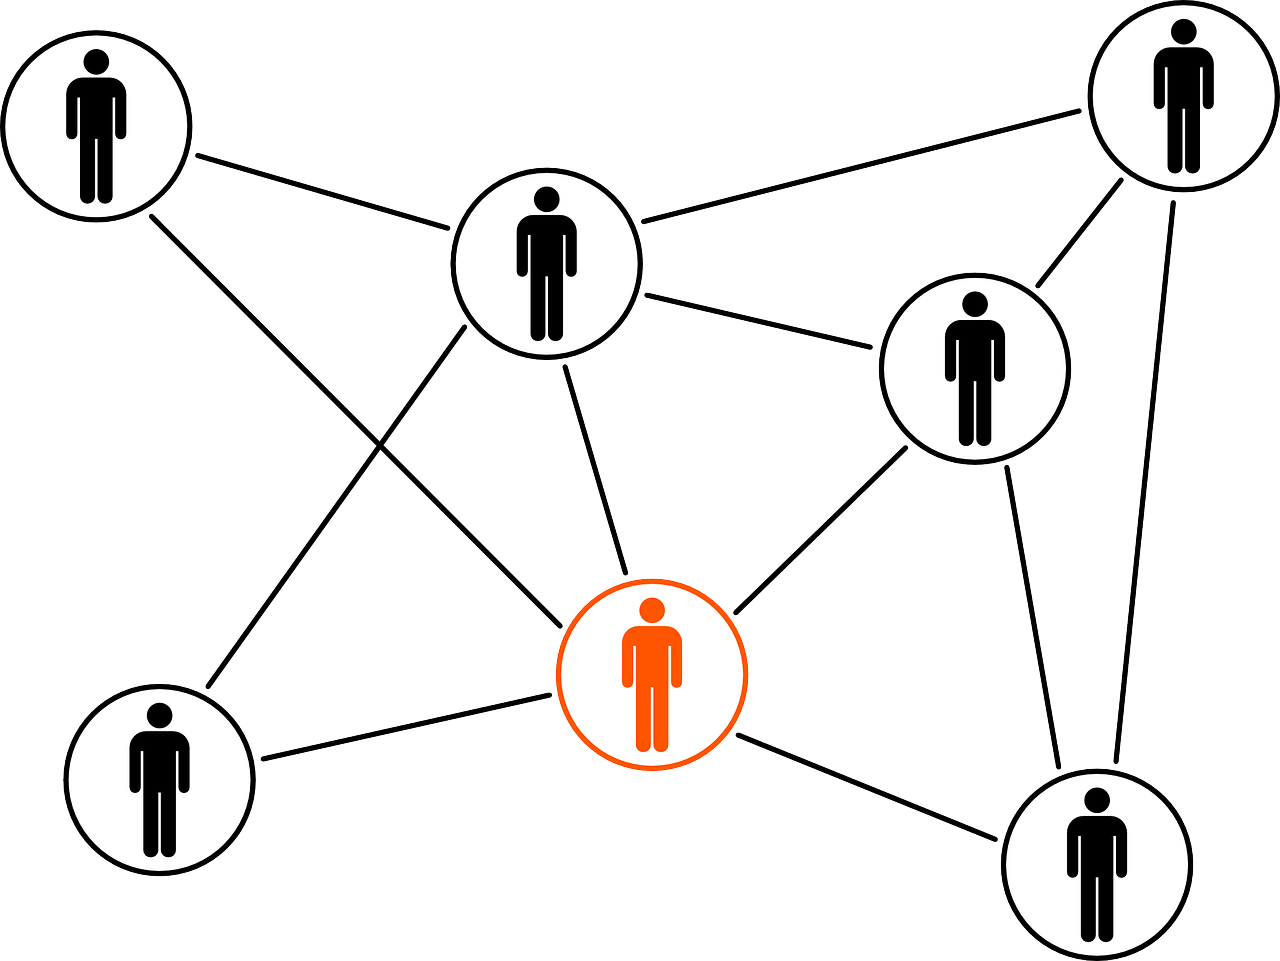 linked, connected, network